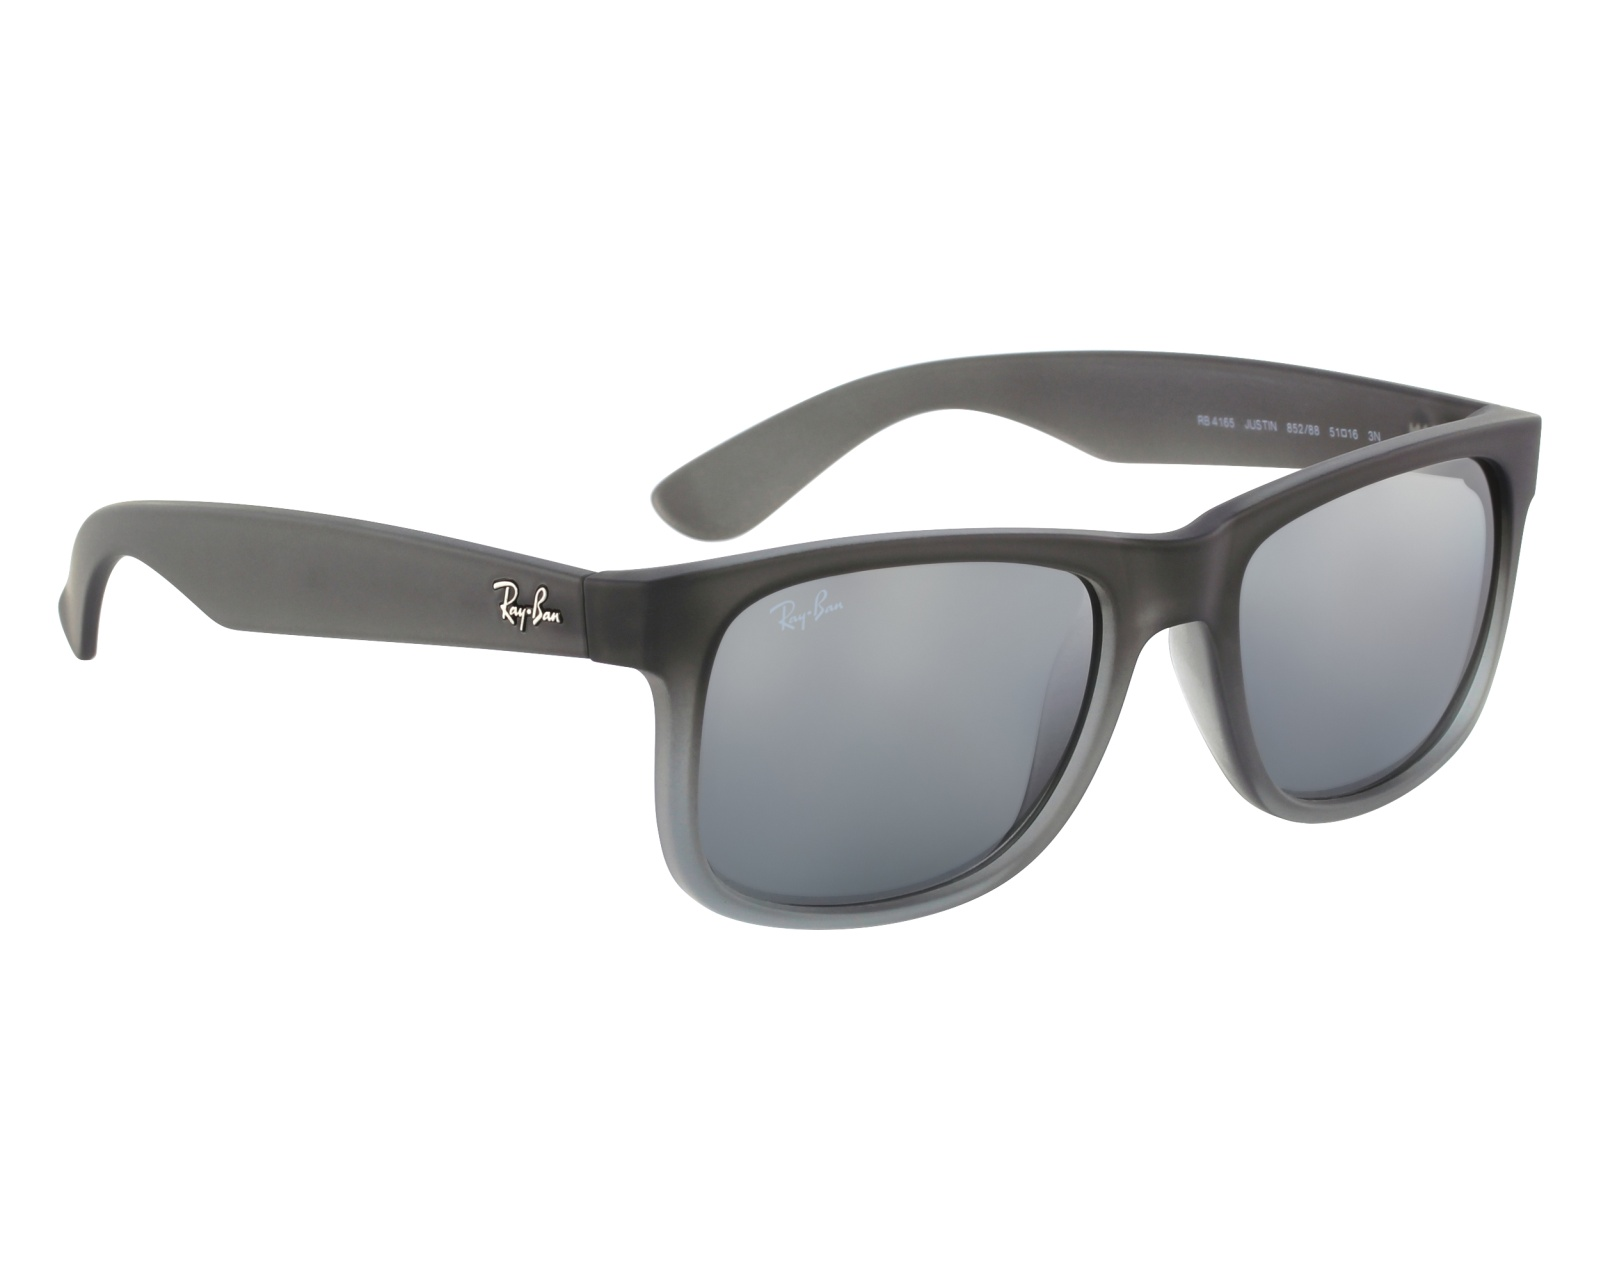 Sunglasses Ray-Ban RB-4165 852 88 51-15 Grey front view 79742755b5